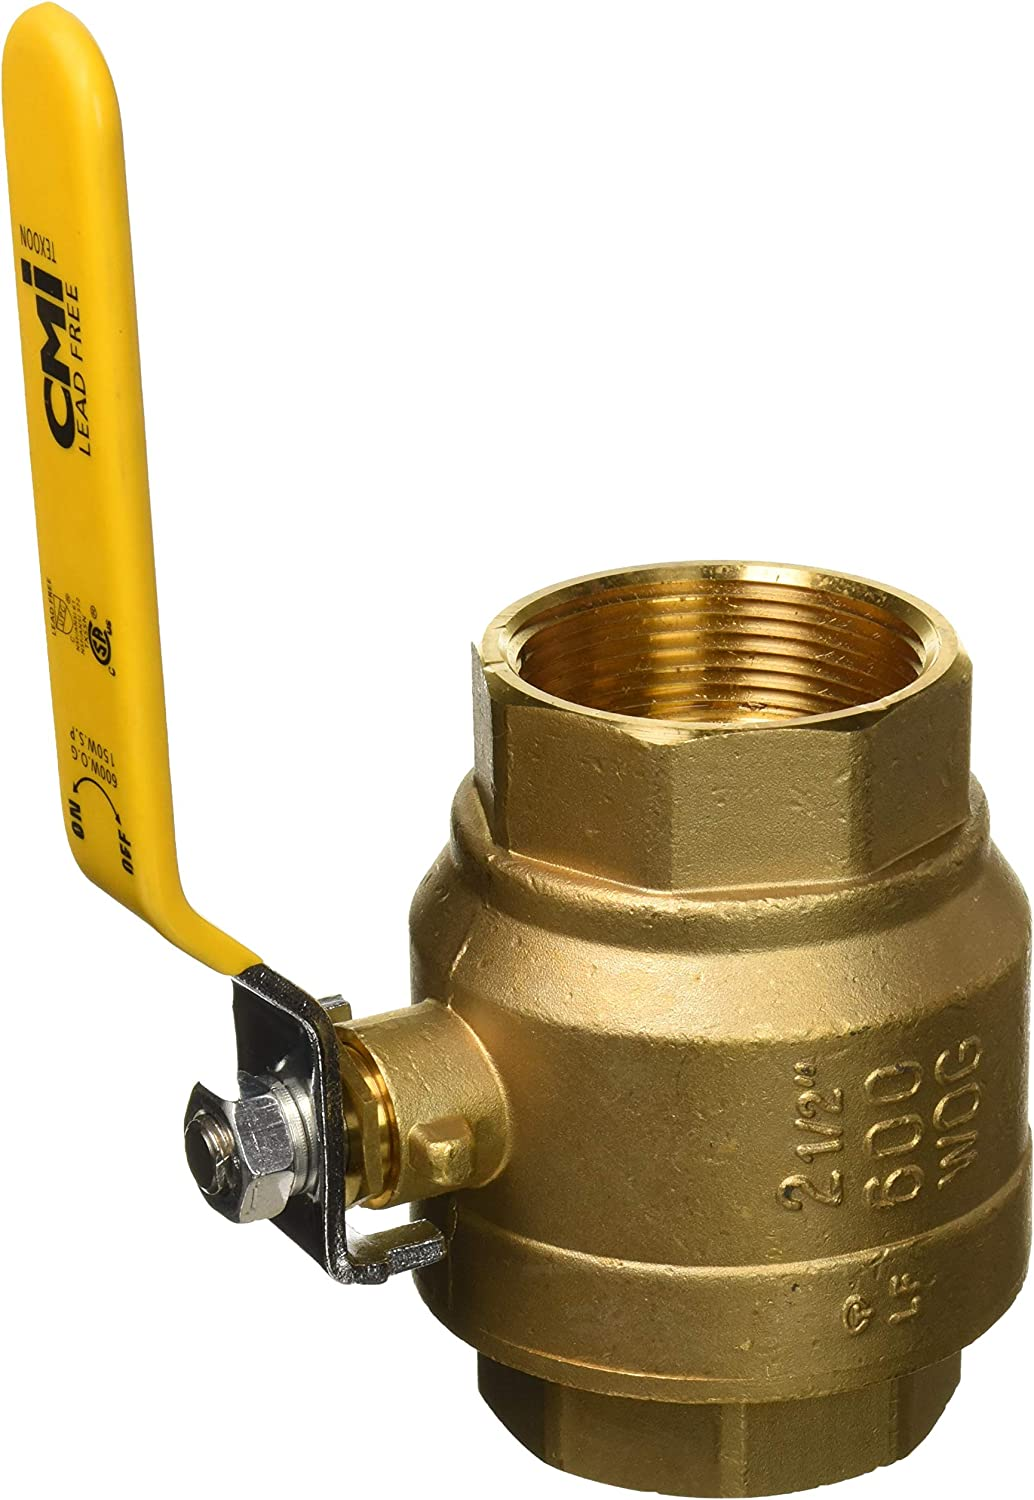 2 Brass Ball Valve Threaded Mechanical Lead Free Vinyl Lever Handle 2-Inch Female Thread Inline Steam Oil 600 WOG Supplies Hot Cold Pipes CSA IPS Full Port Irrigation Water Valves